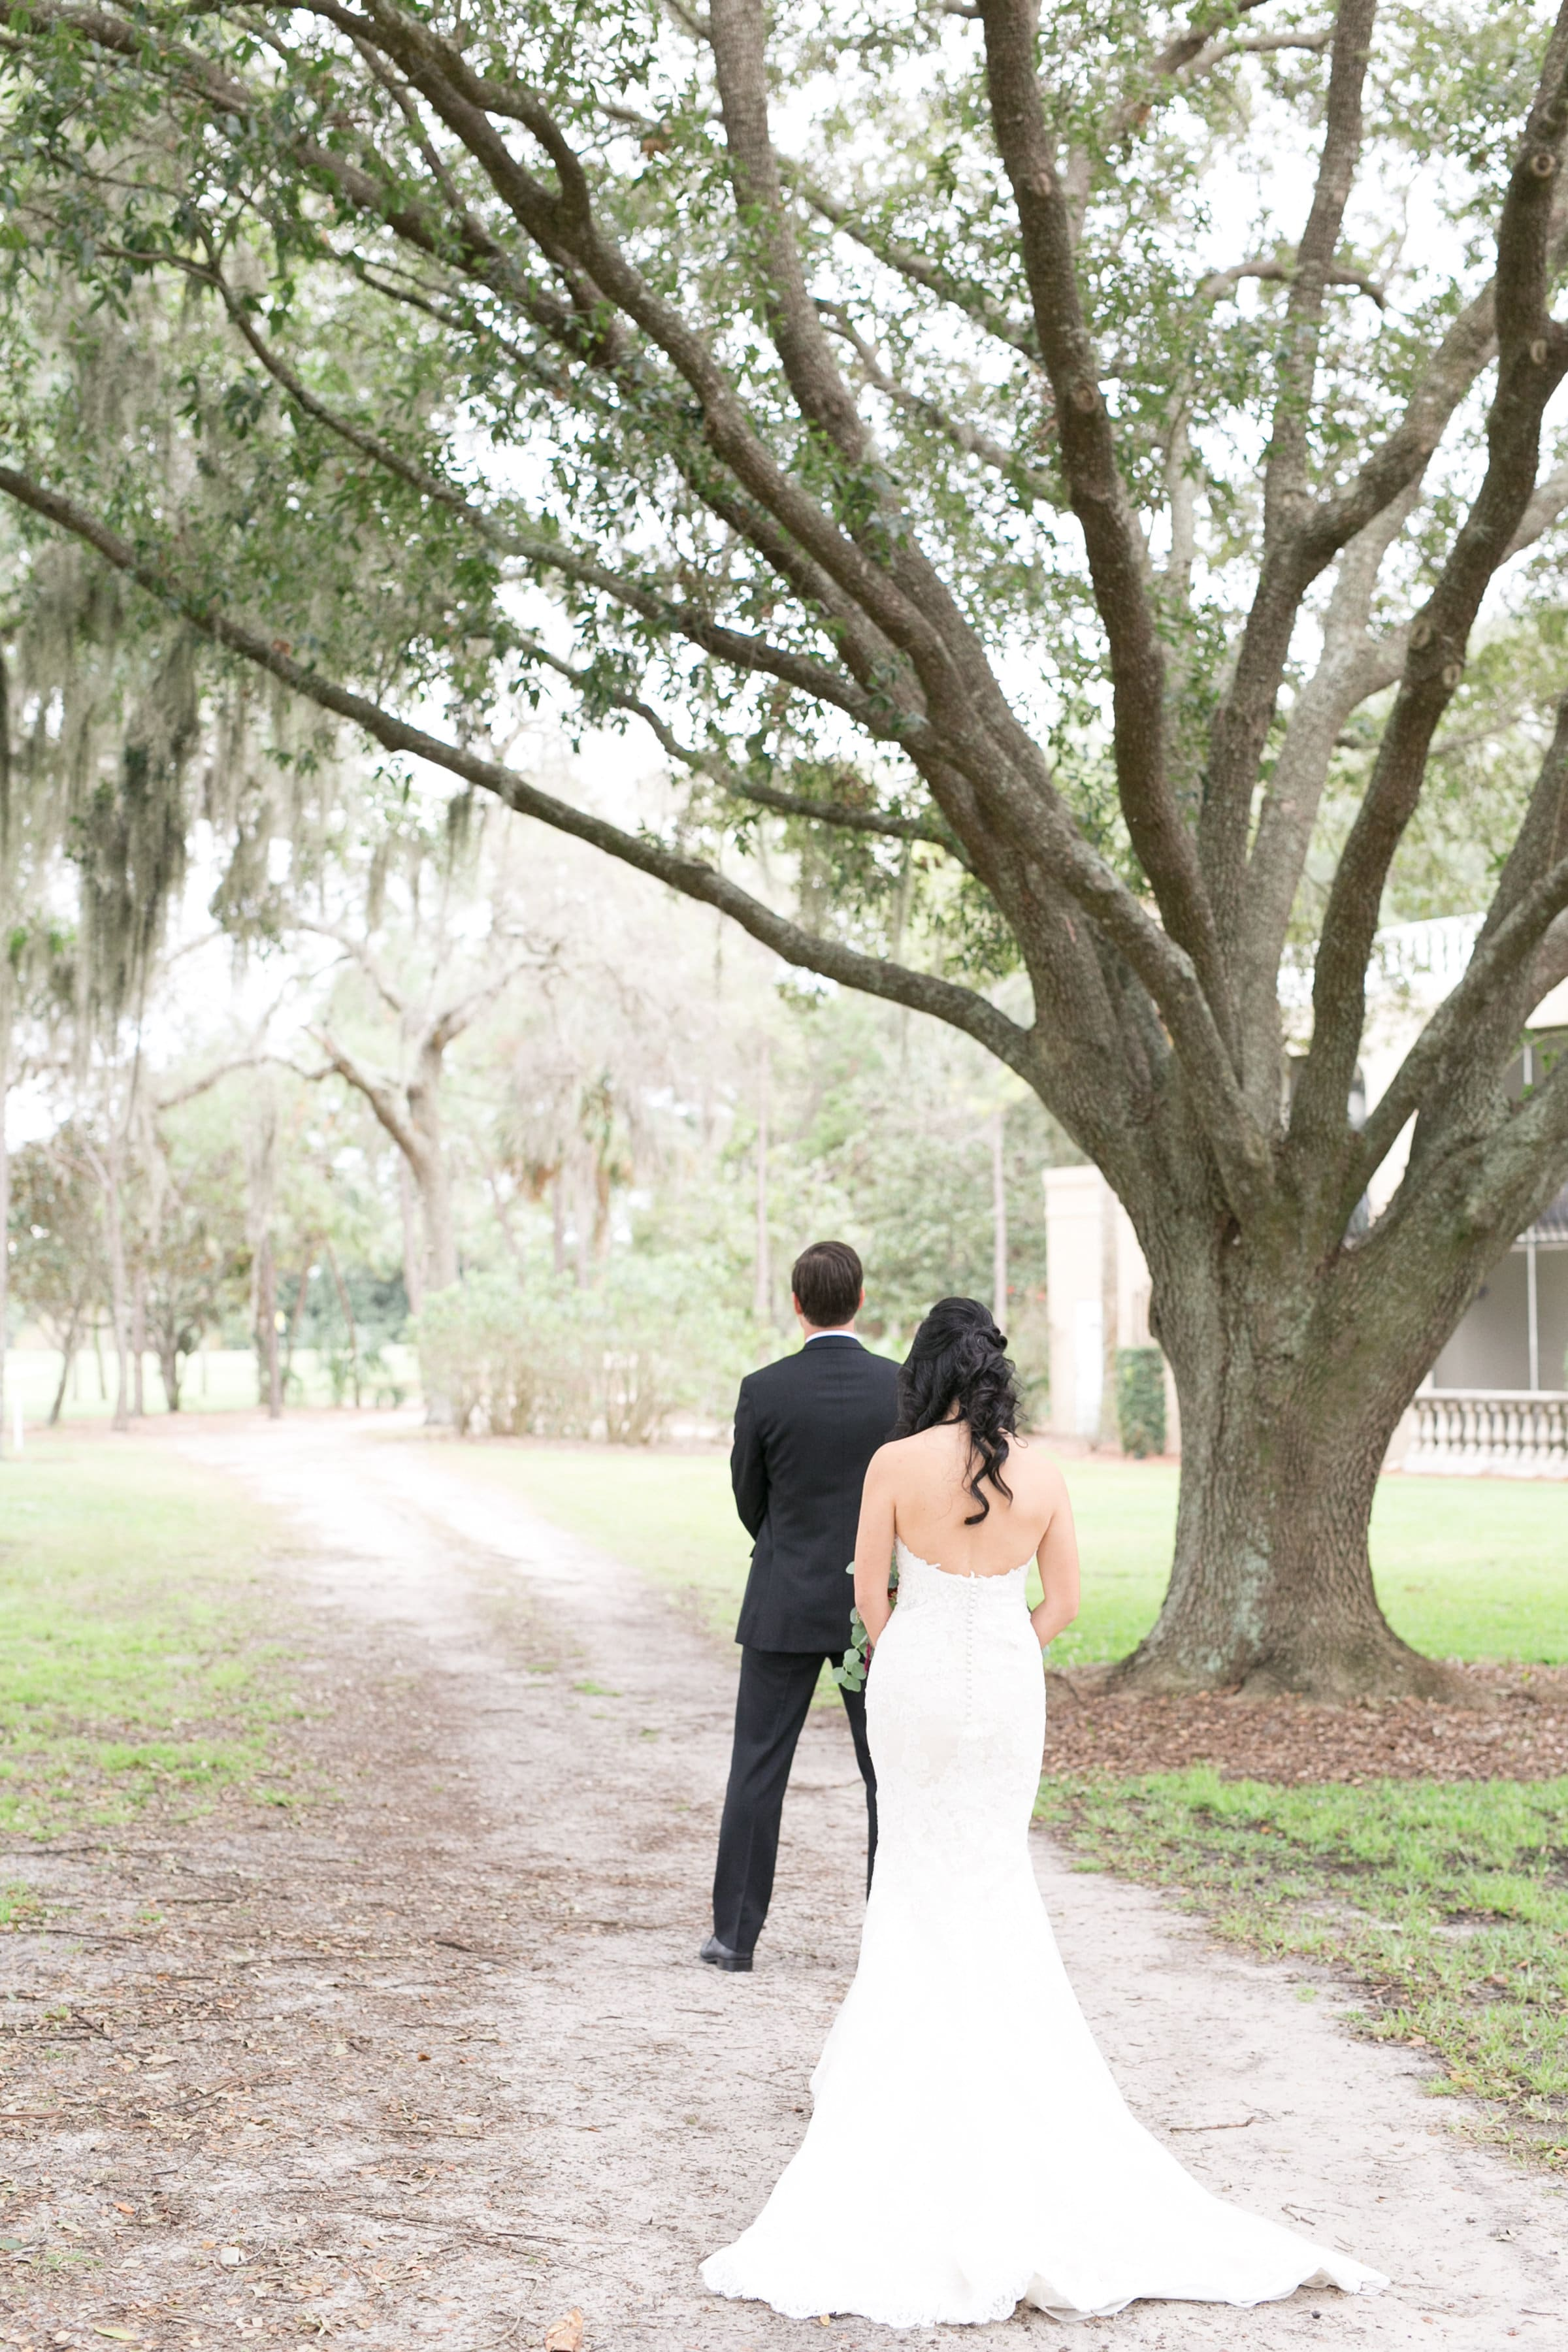 Groom turned around as bride approaches him under old oak tree